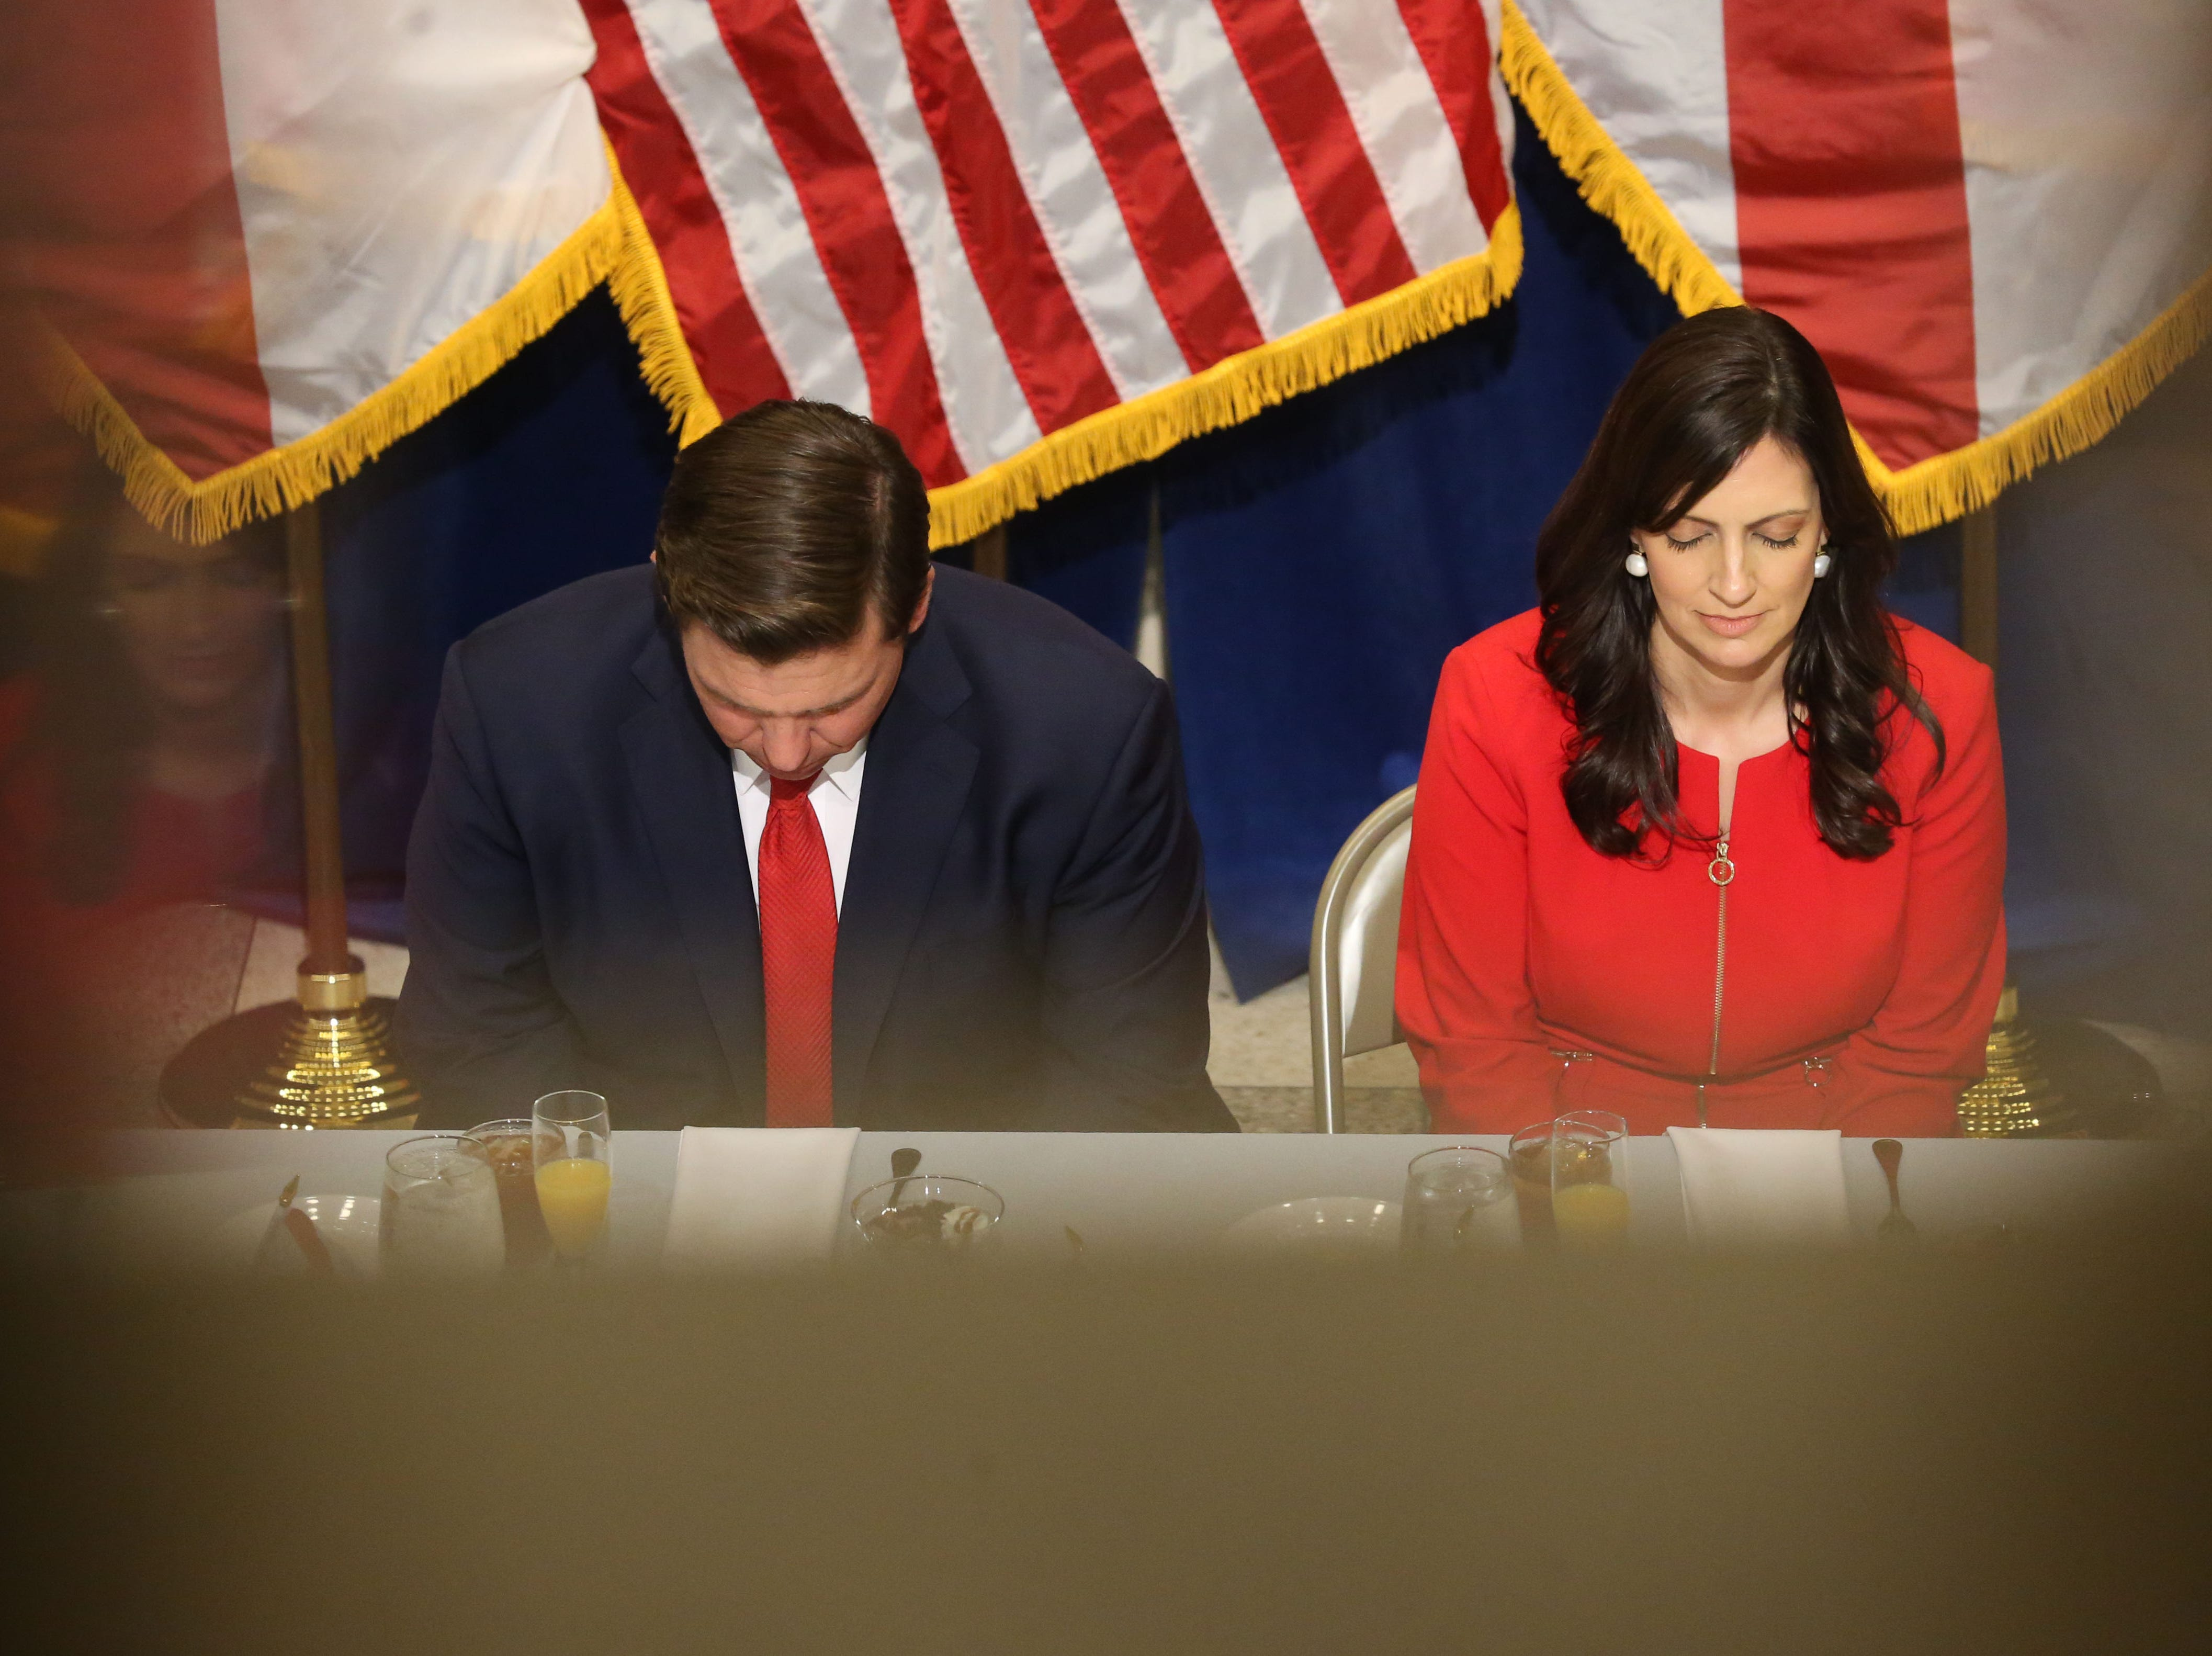 For the first time in Inaugural history, Gov. Ron DeSantis addresses FloridaÕs Legislative leaders and Cabinet officials. DeSantis discusses his plans to work with our stateÕs elected leaders to achieve a Bold Vision for a Brighter Future, Tuesday, Jan. 8, 2019. Gov. Ron DeSantis, left, and Lt. Gov. Jeanette Nunez, bow their head in prayer before the start of the luncheon.